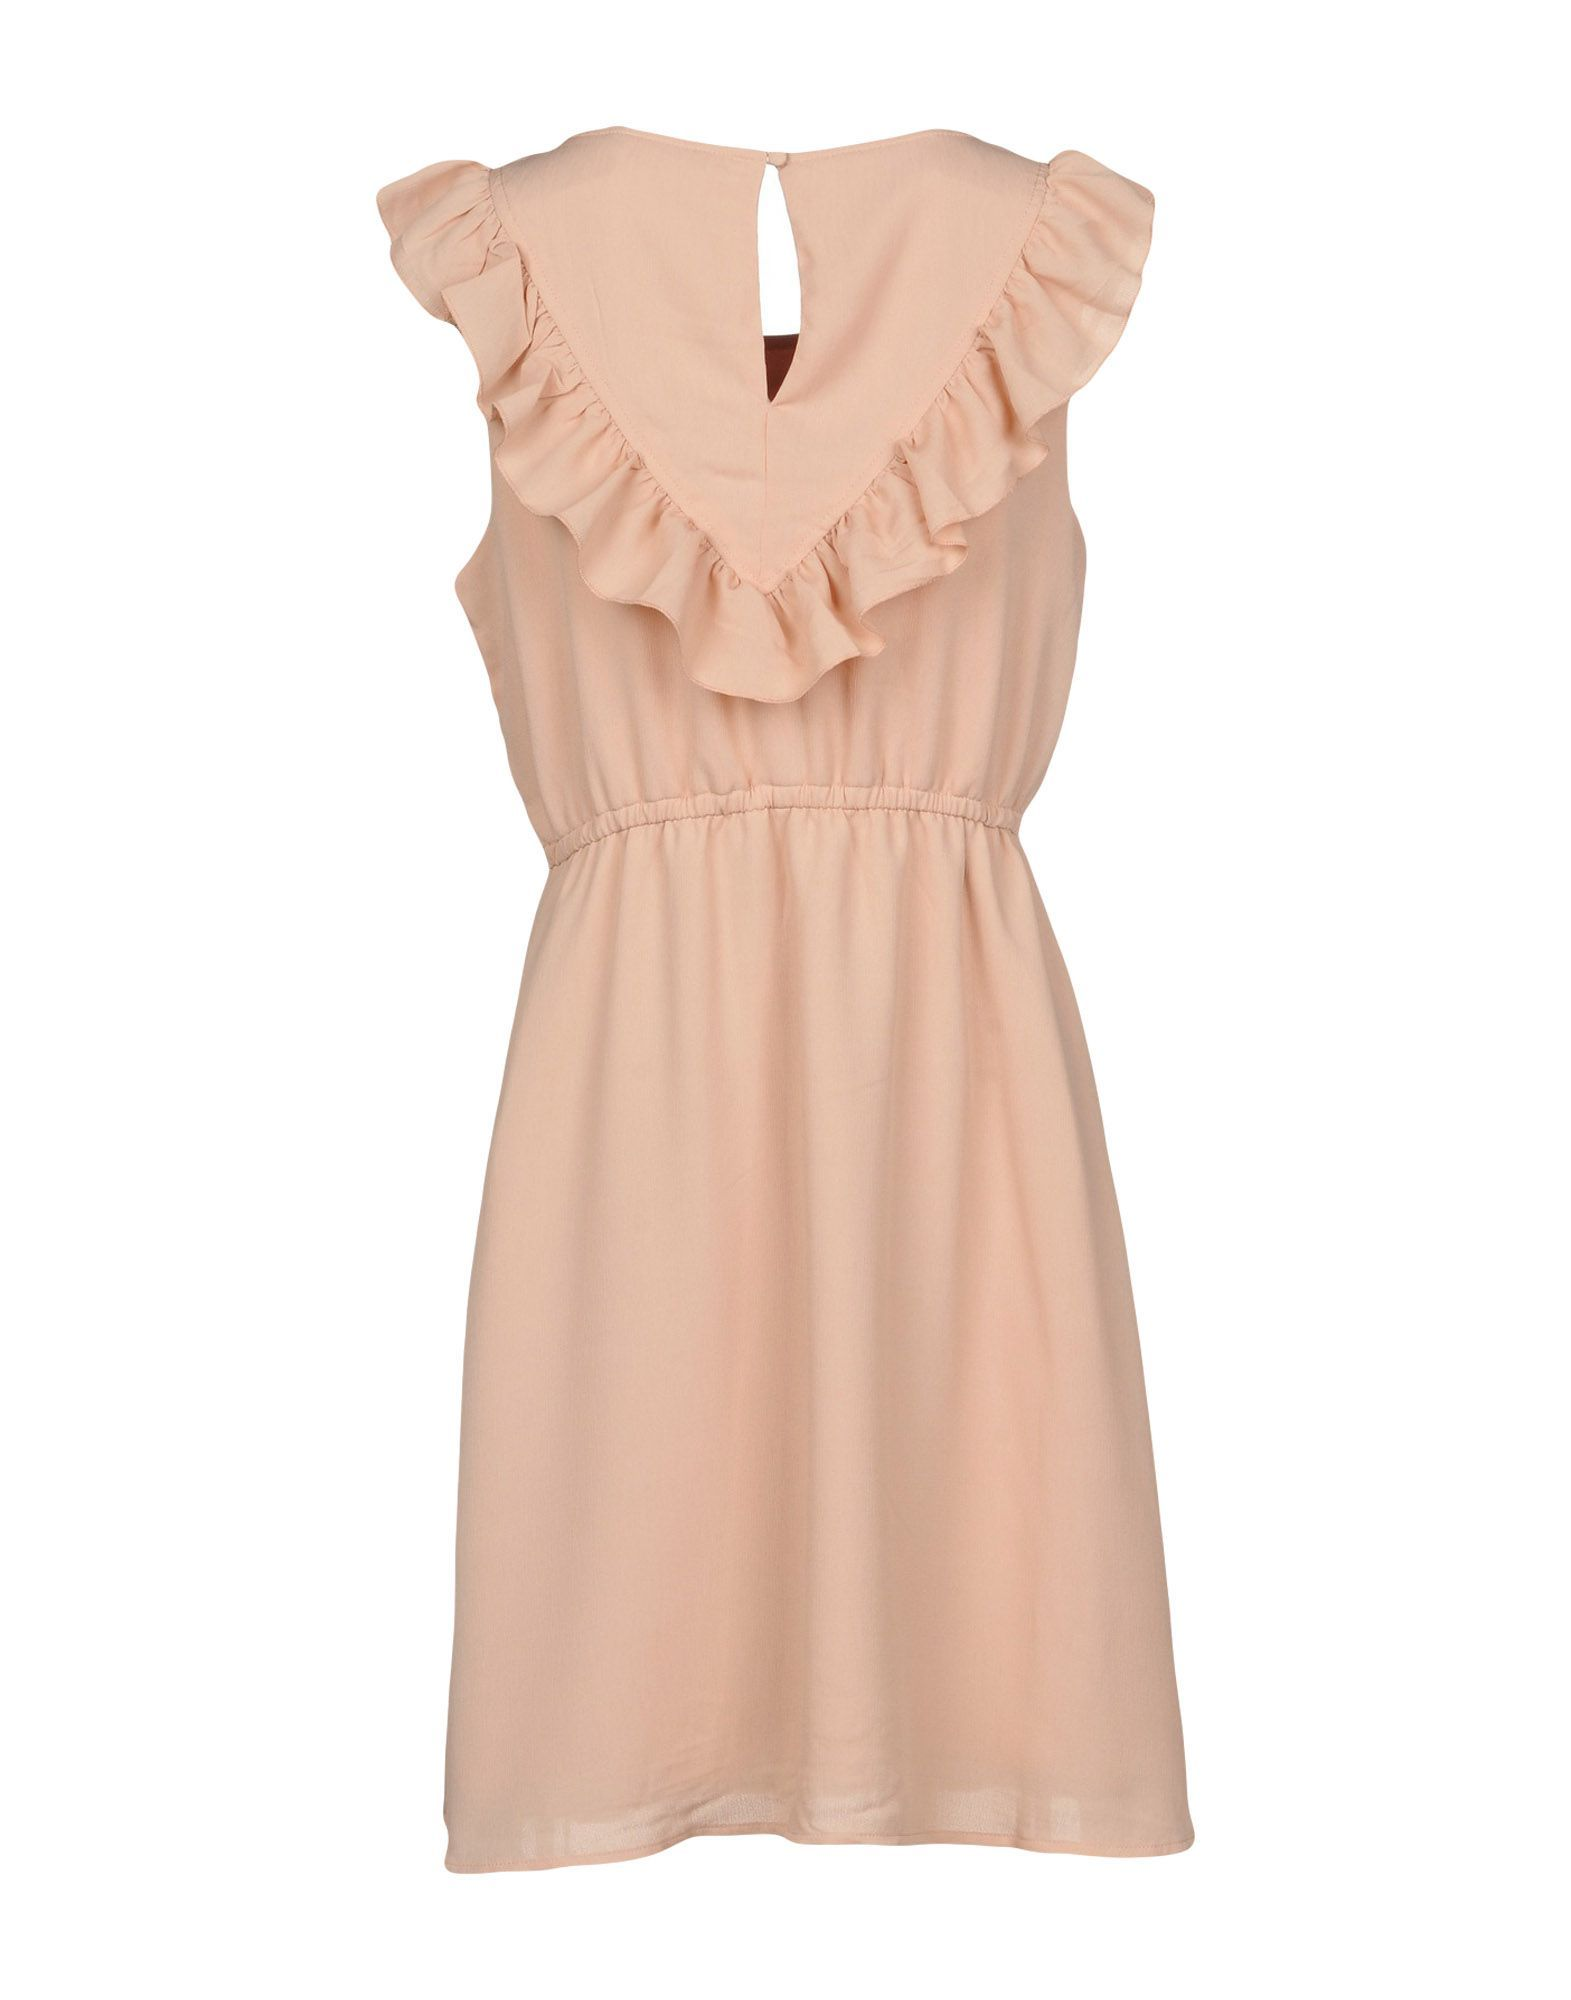 Only Pale Pink Ruffle Short Dress